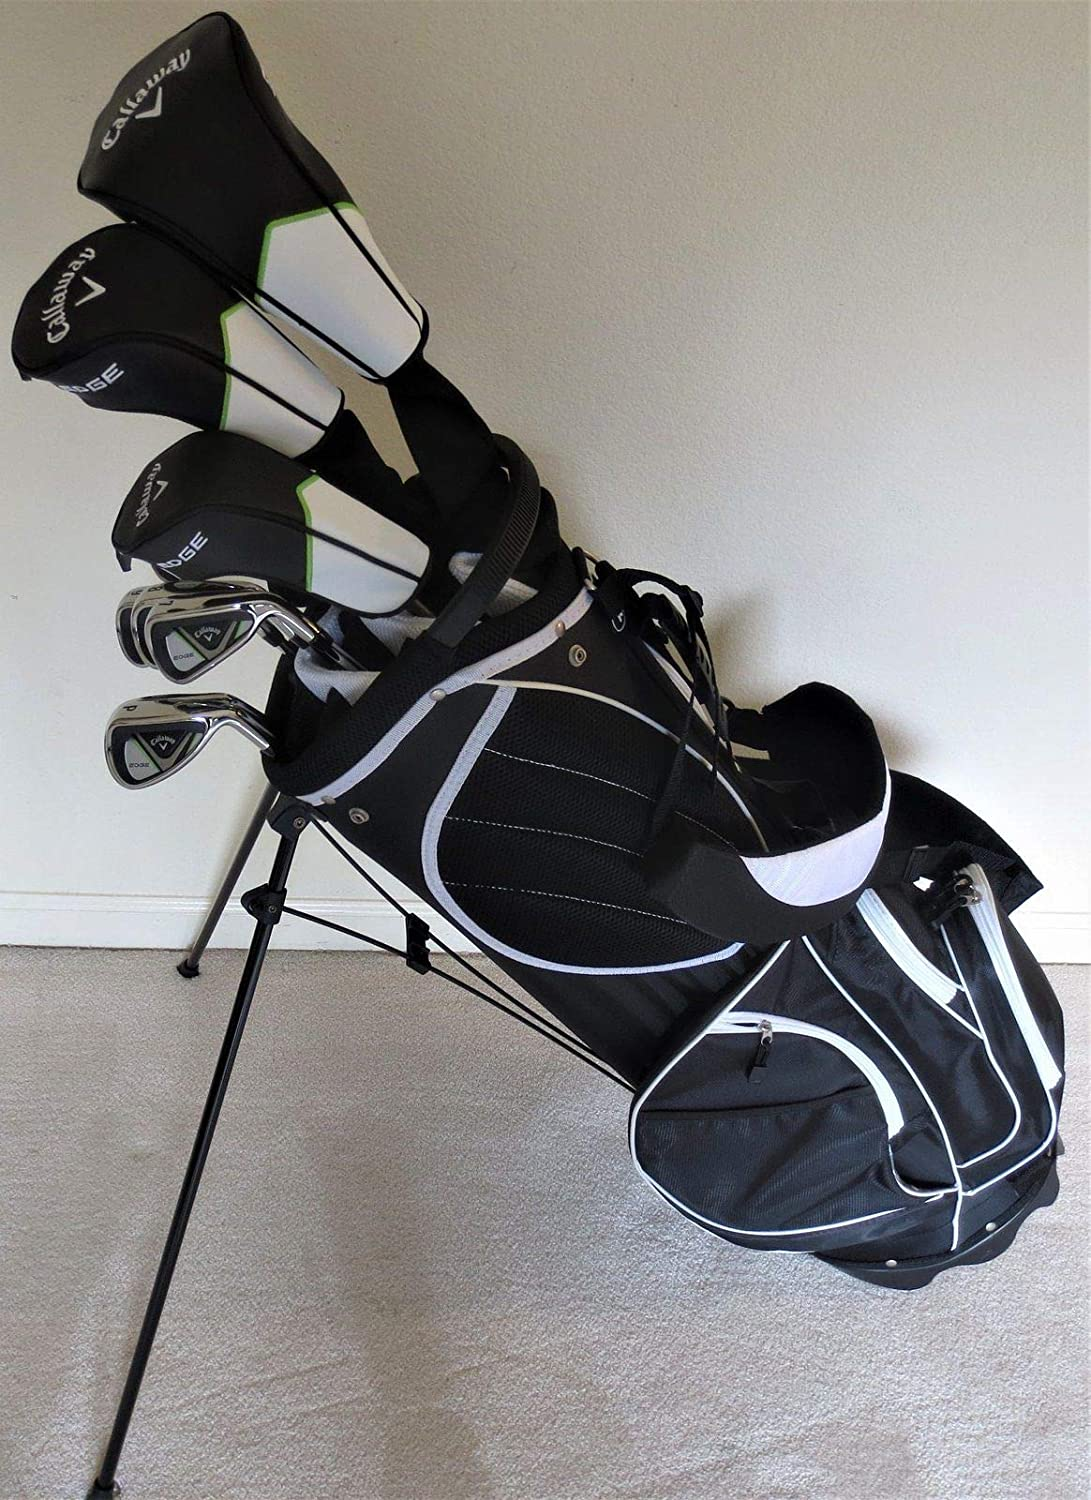 Callaway Mens Complete Golf Clubs Set With Stand Bag Driver 3 Wood Hybrid Irons Putter Right Handed Regular Flex